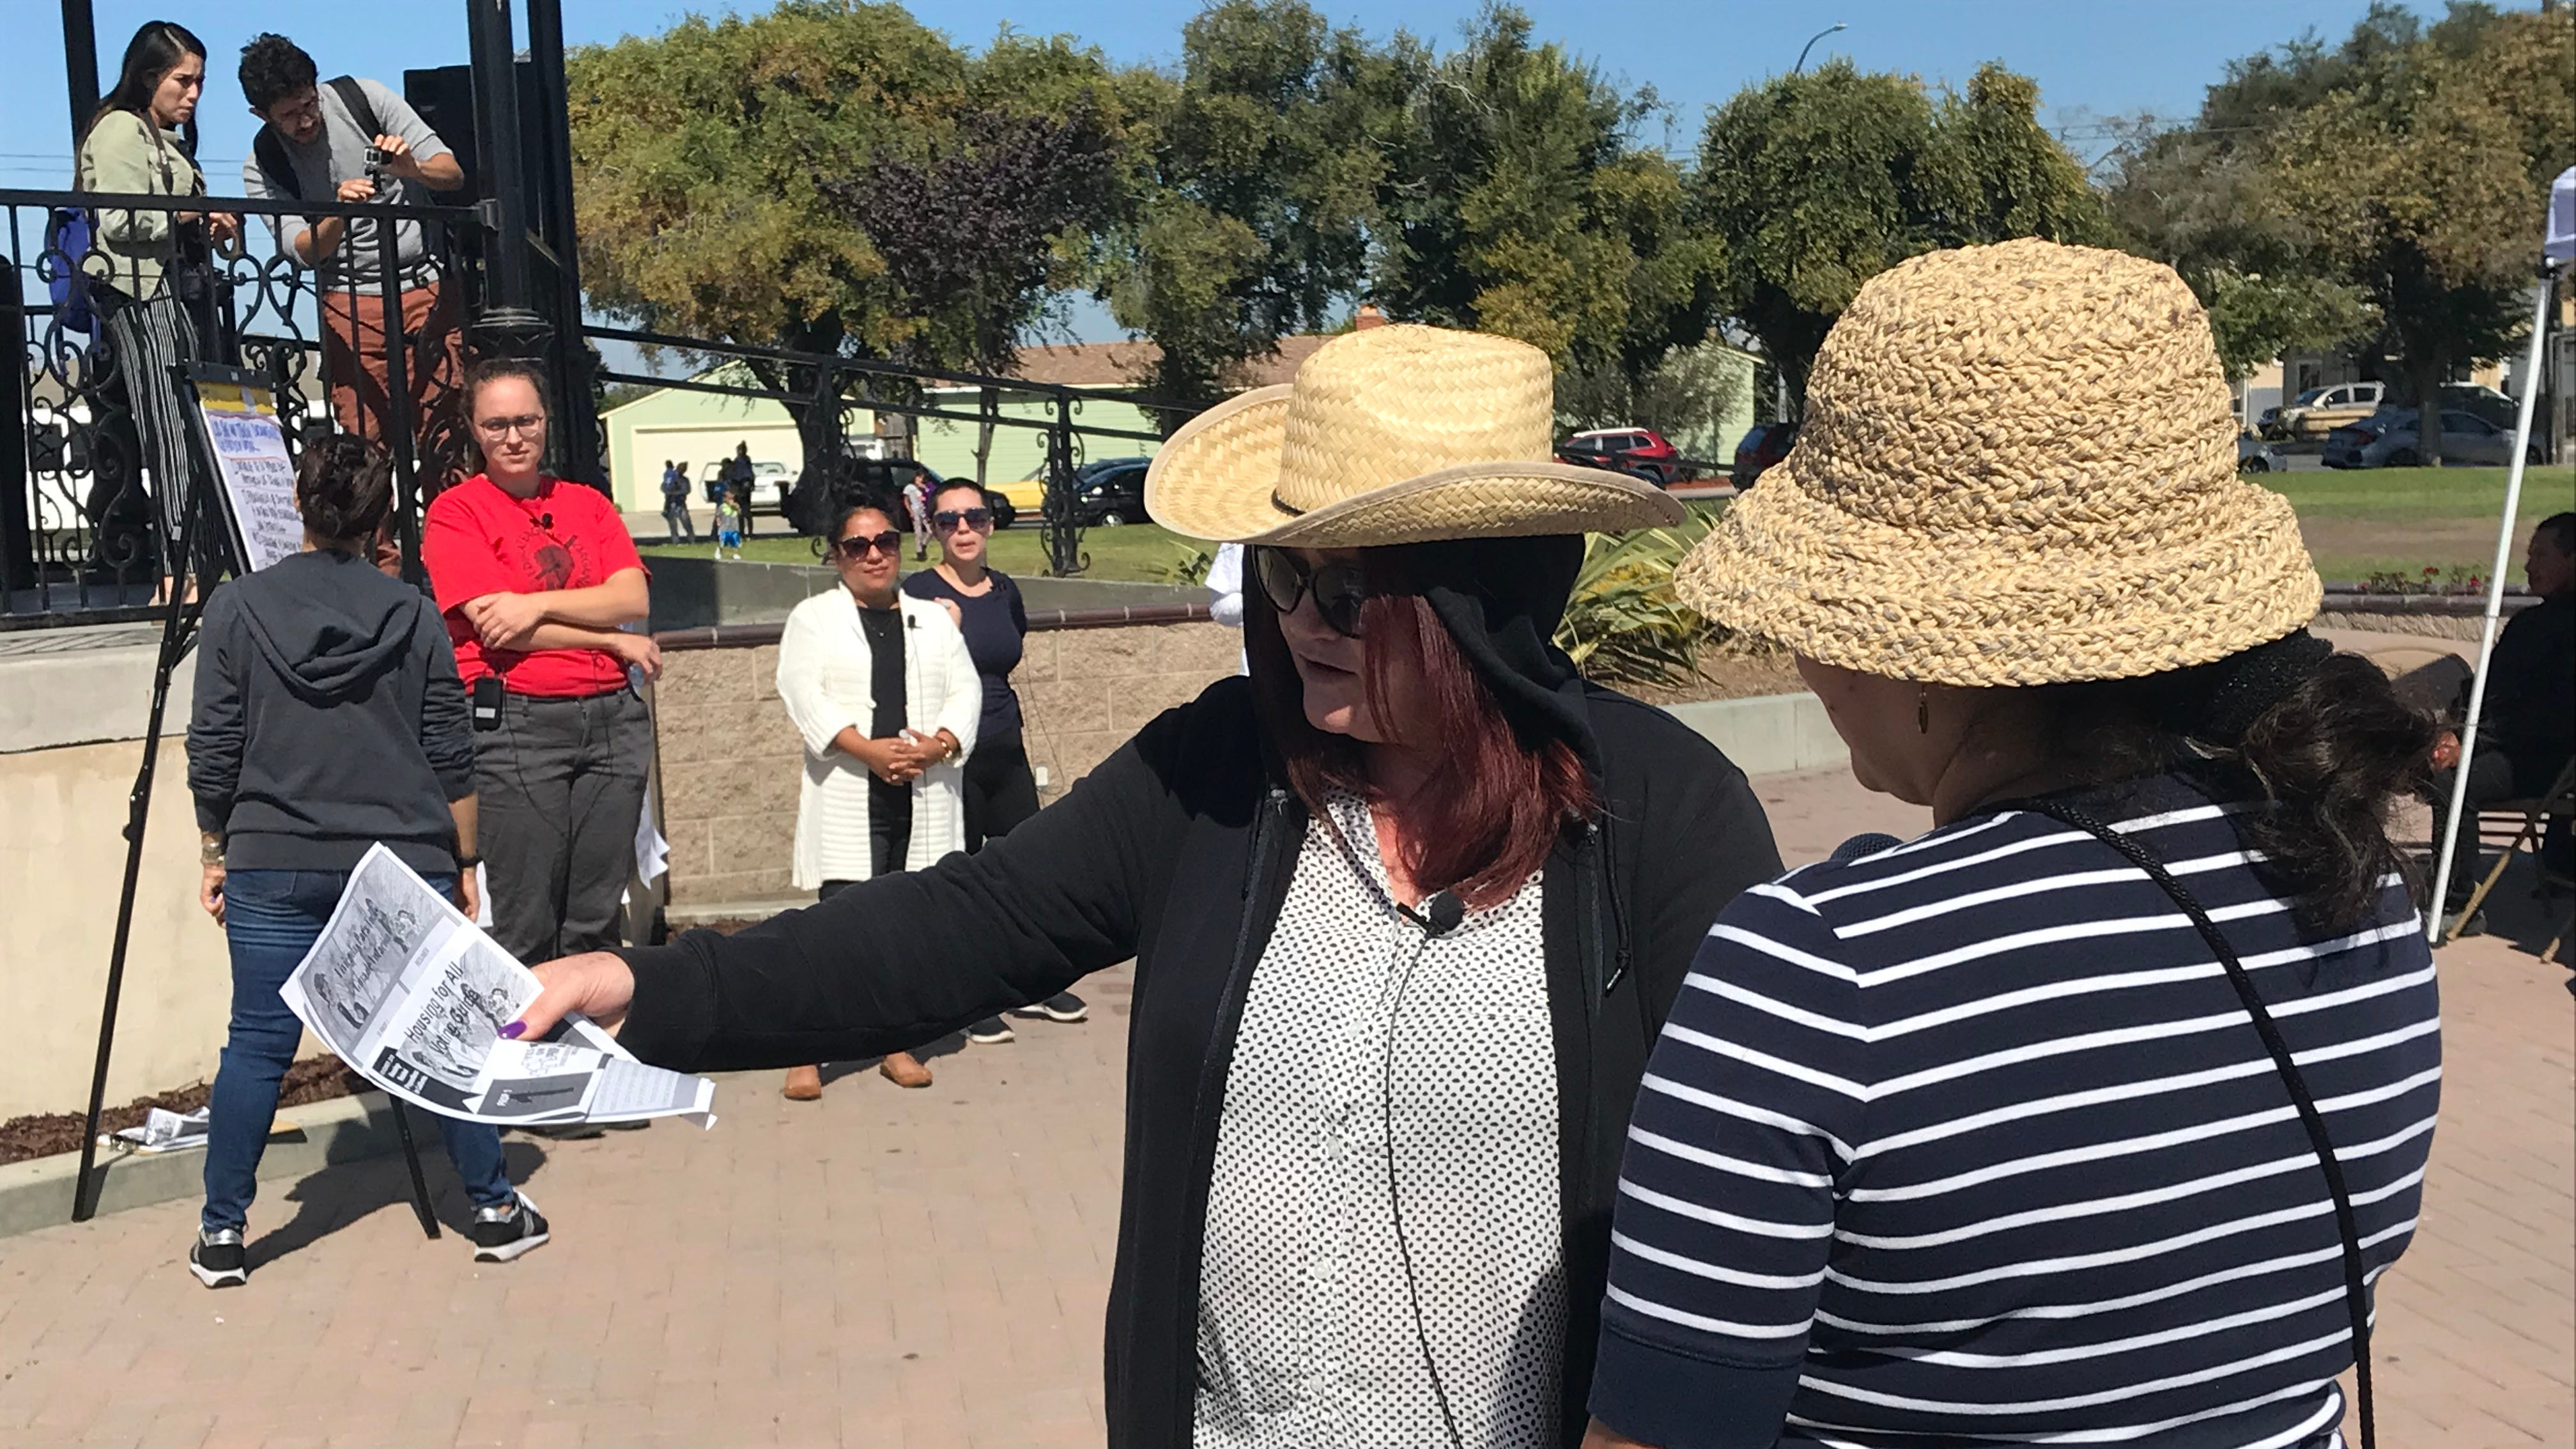 Adriana De Peña acts as an undocumented immigrant as part of a skit on how to engage with Salinas residents on housing issues.